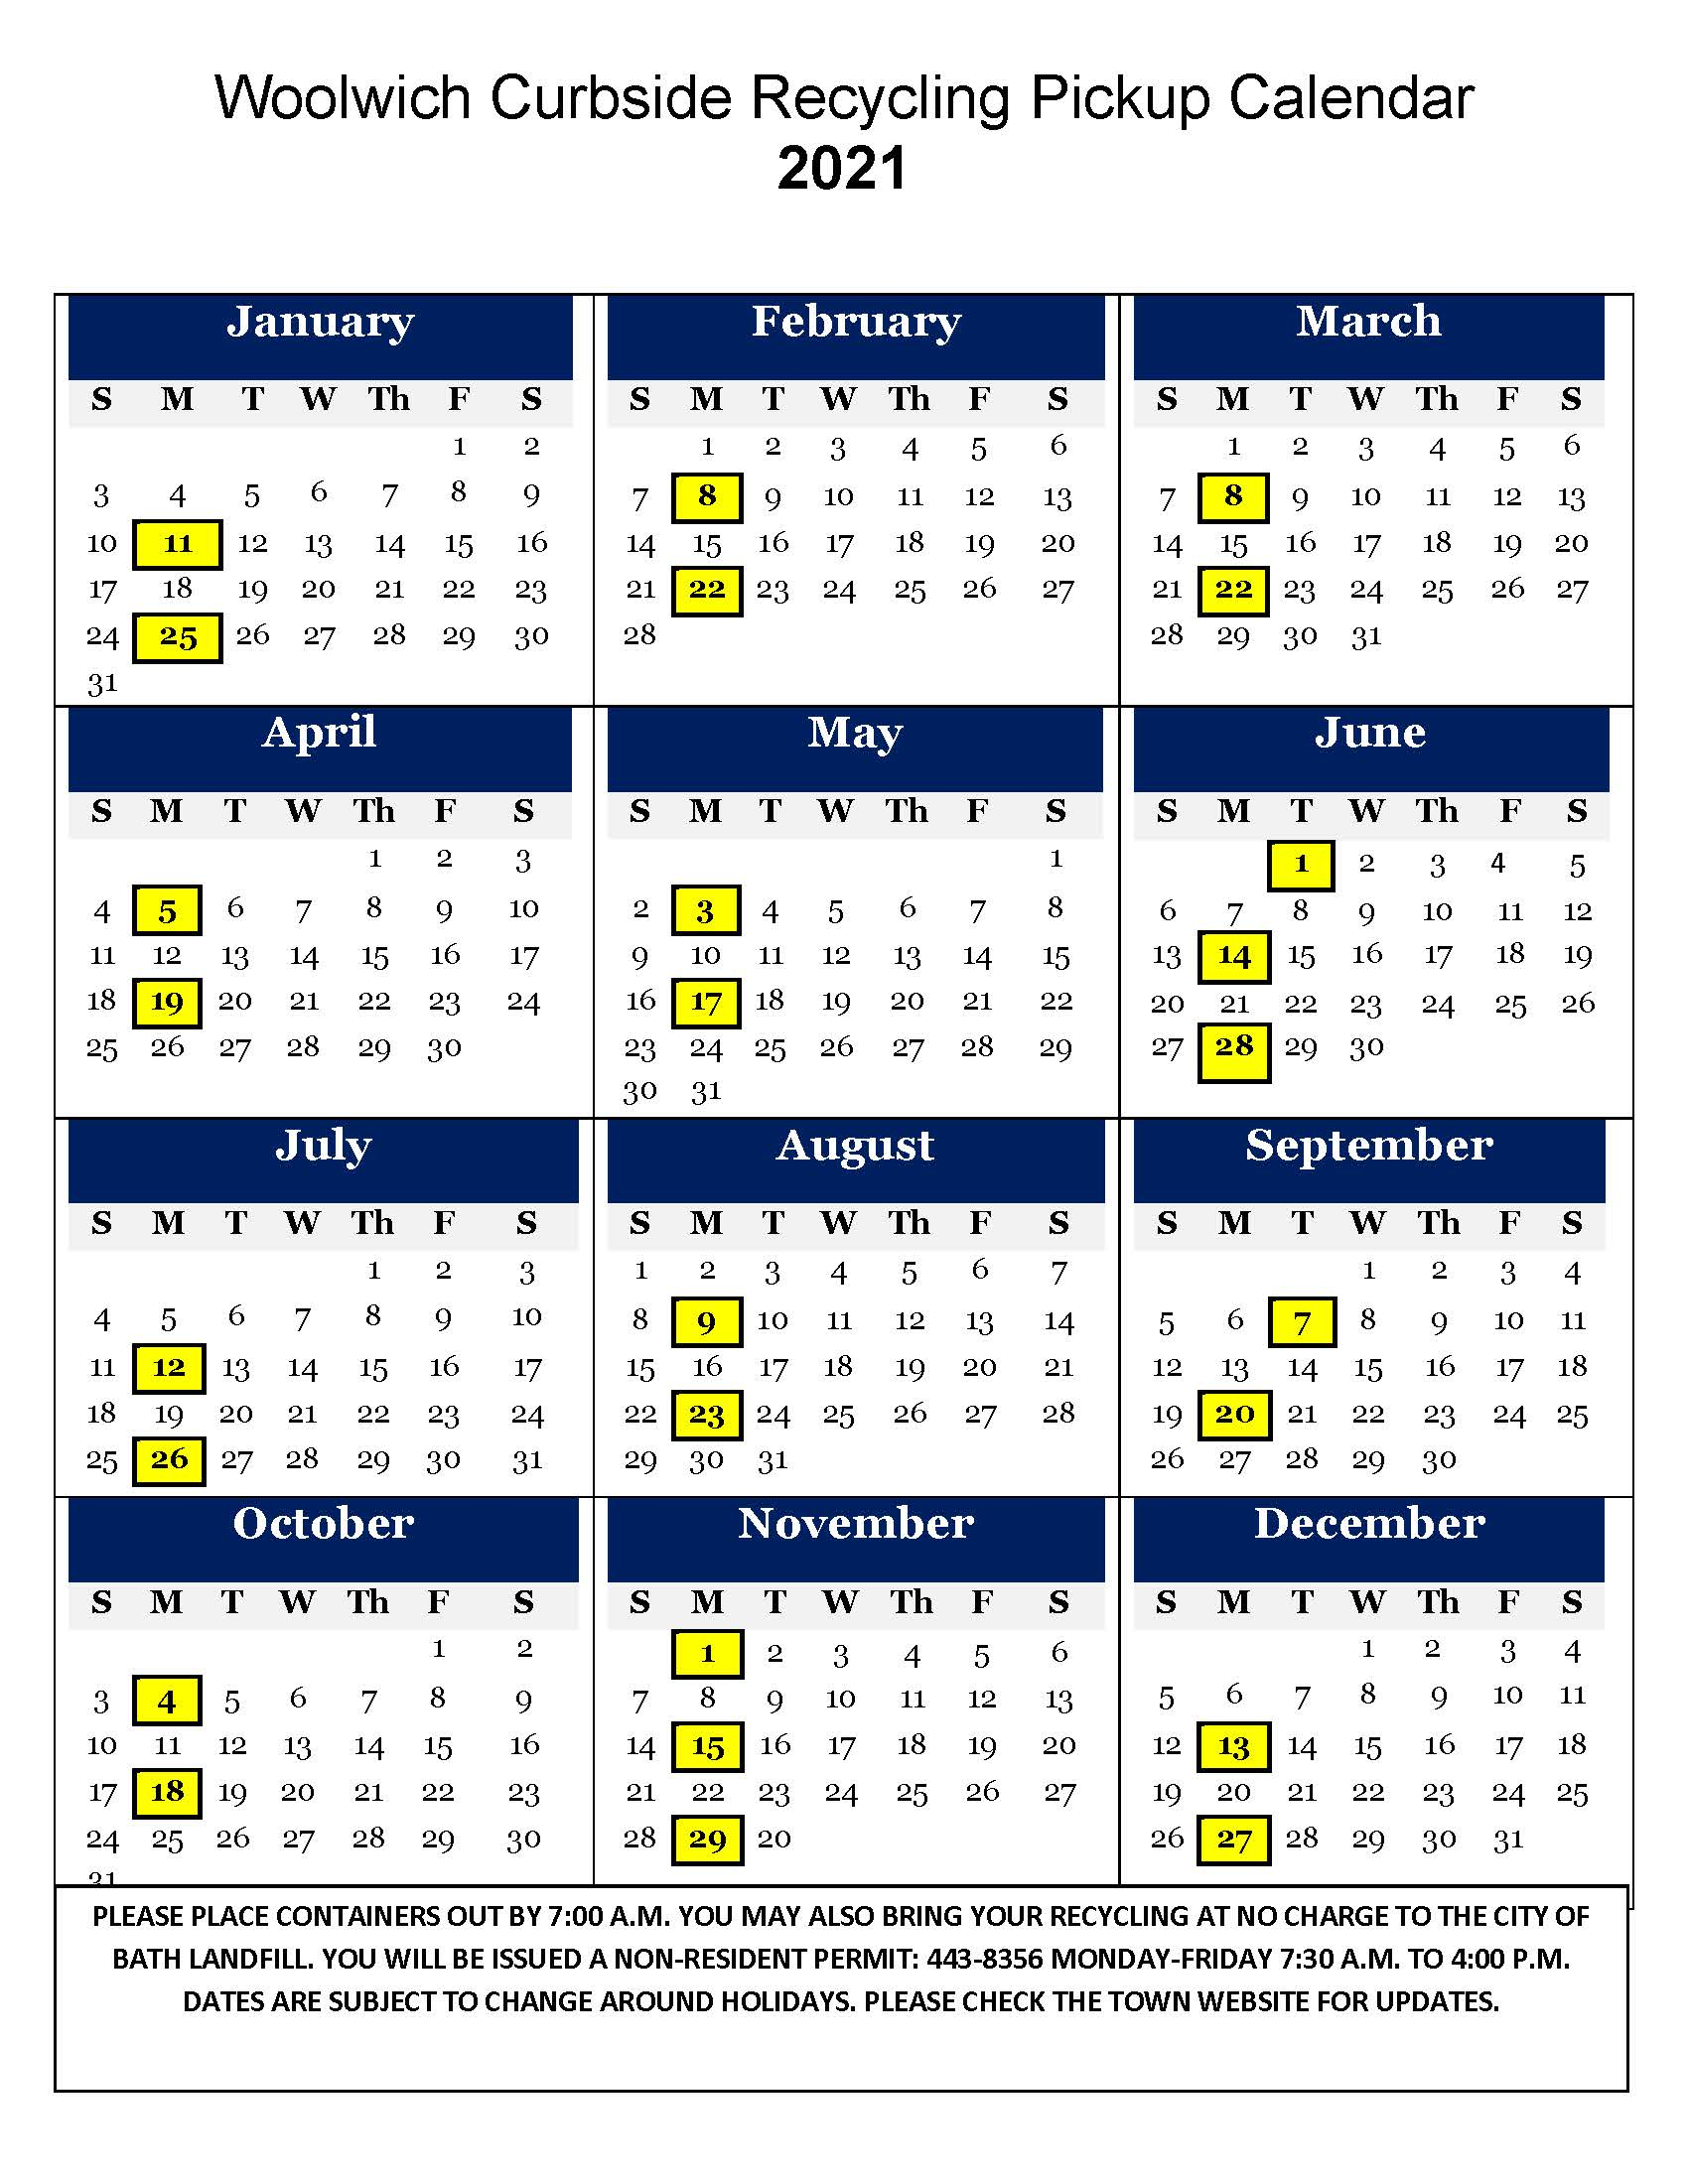 Woolwich-Curbside-Recycling-Pickup-Calendar-2 (1)